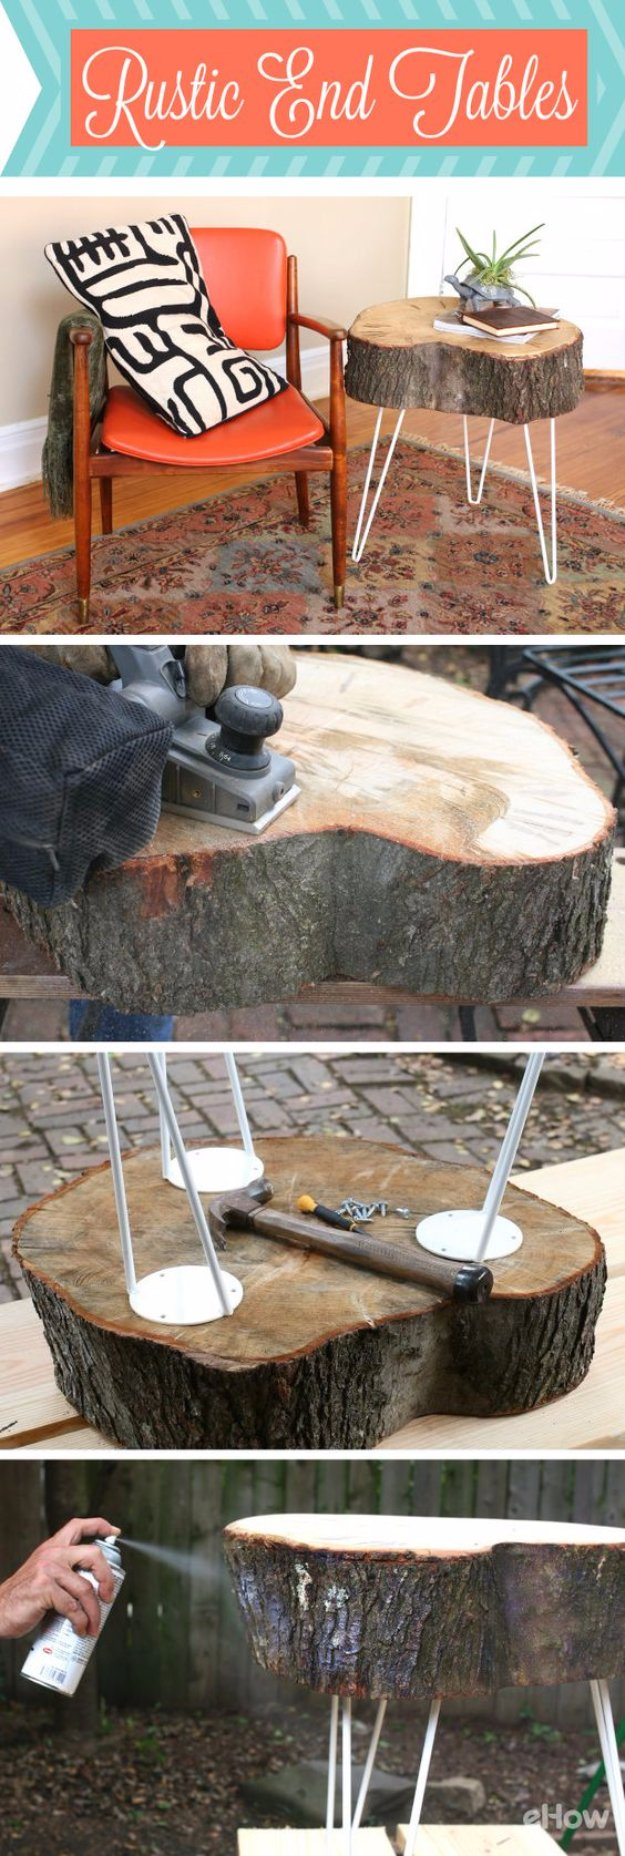 DIY End Tables with Step by Step Tutorials - Rustic End Table Tutorial - Cheap and Easy End Table Projects and Plans - Wood, Storage, Pallet, Crate, Modern and Rustic. Bedroom and Living Room Decor Ideas http://diyjoy.com/diy-end-tables